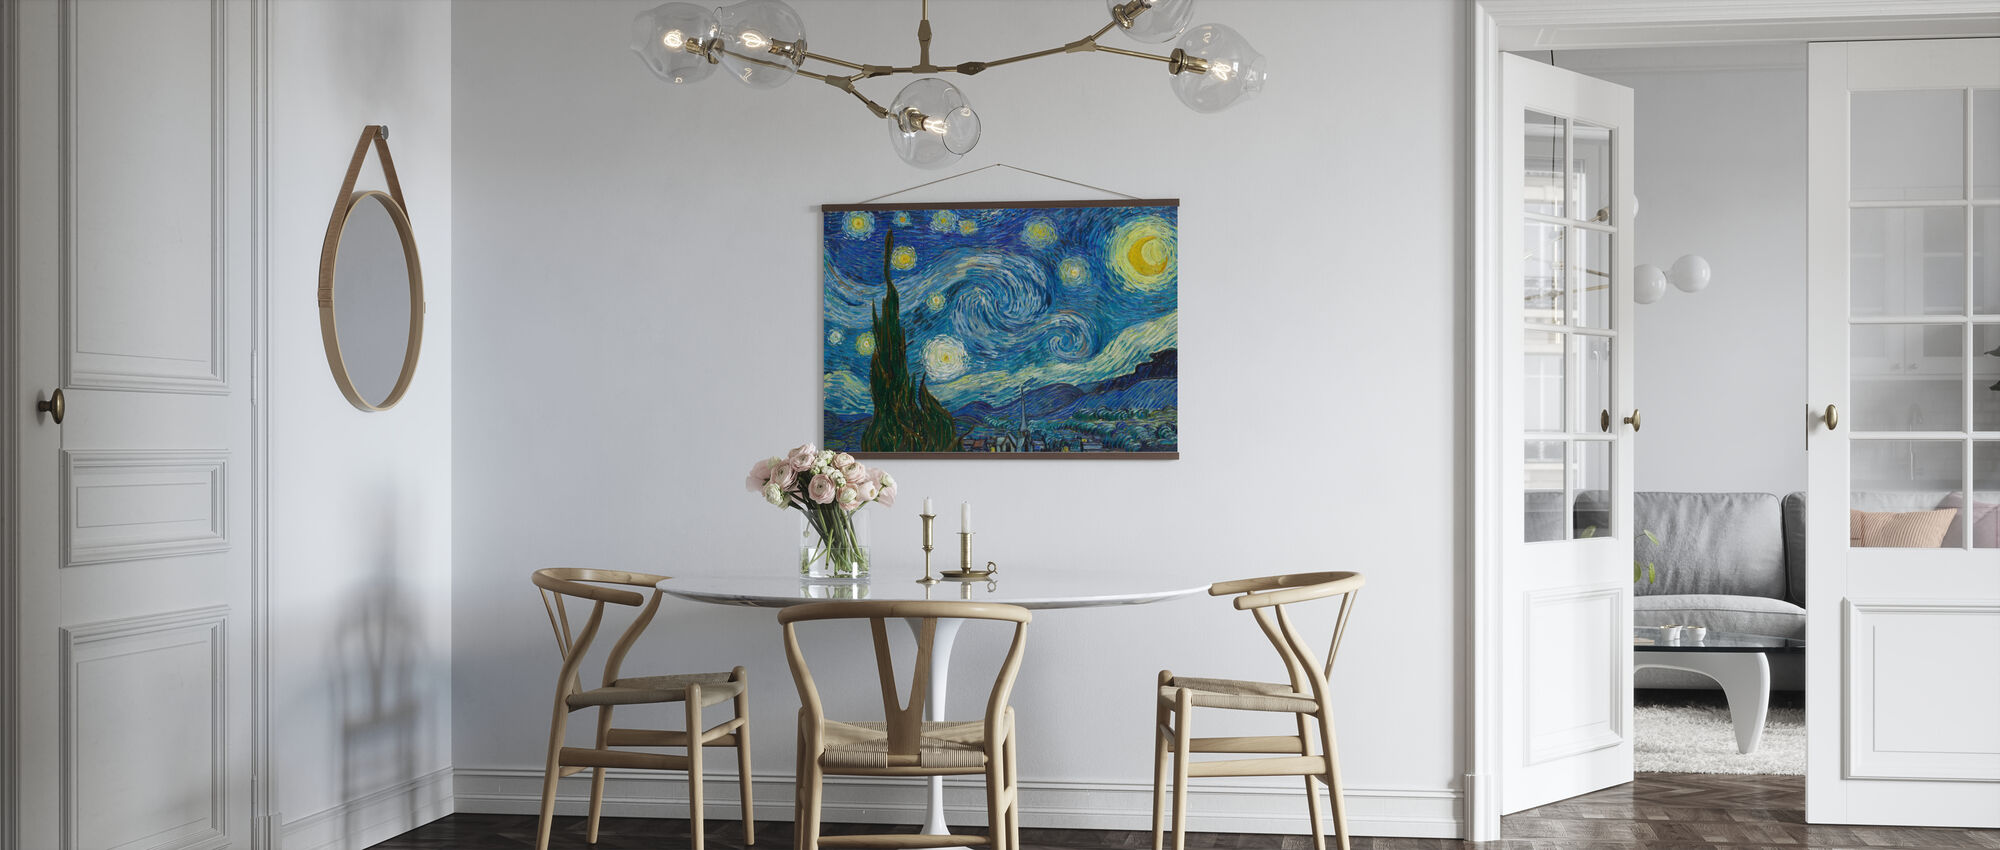 Vincent Van Gogh - Starry Night - Poster - Kitchen